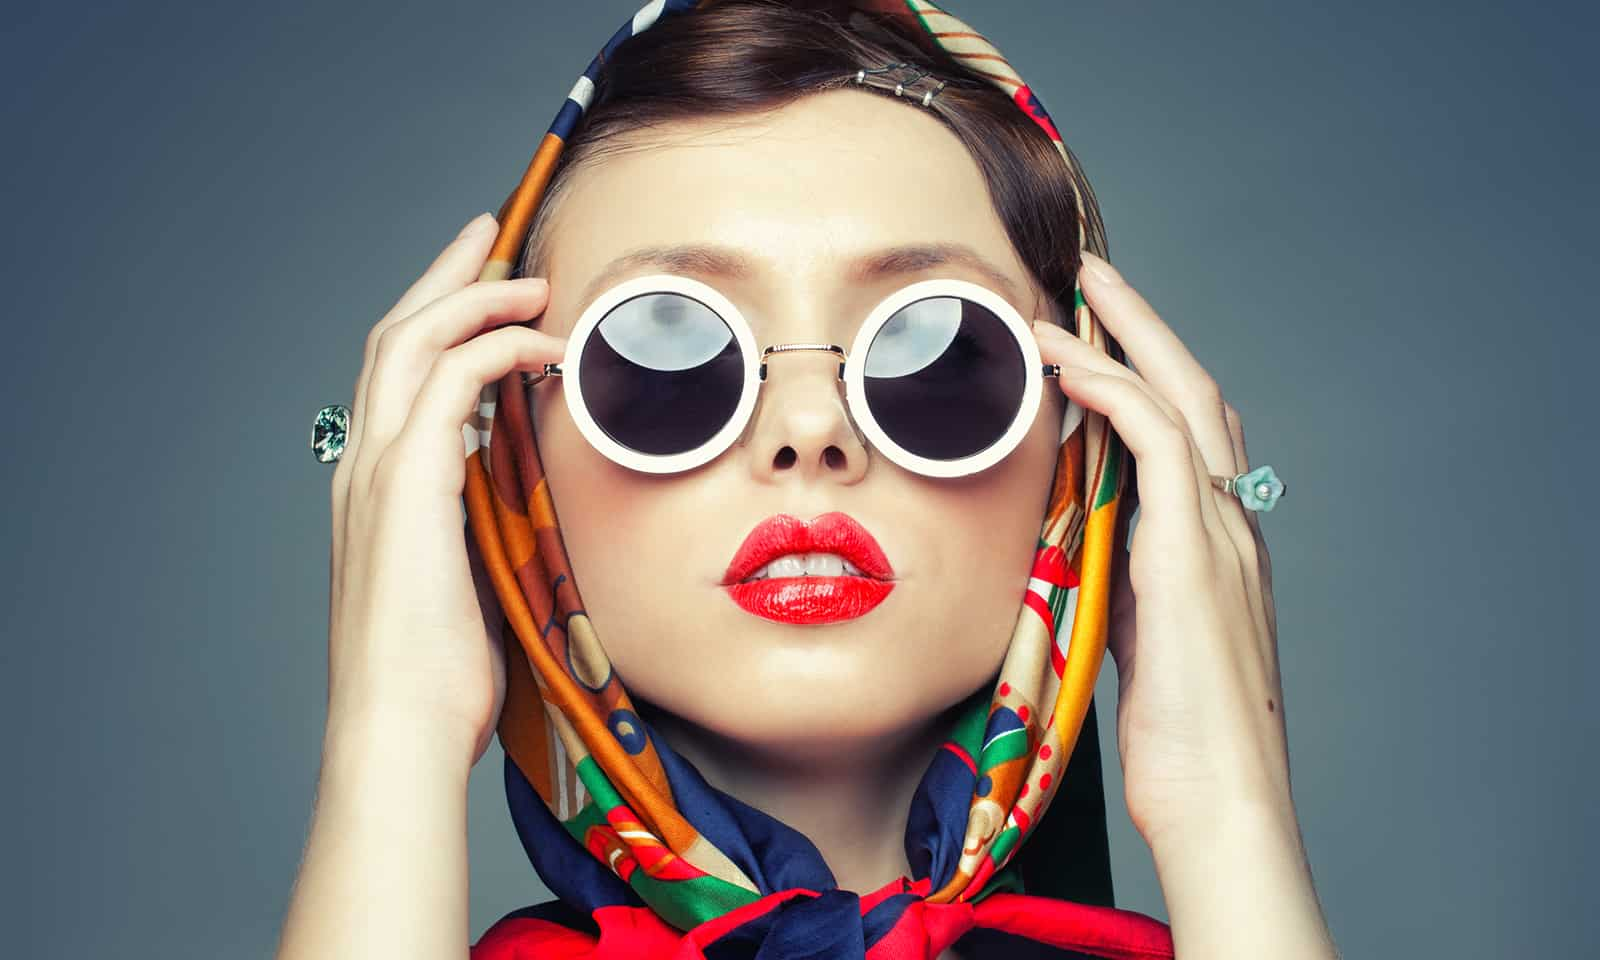 Eyewear Trends 2020.Winter 2019 2020 Eyewear Trends Viva Glam Magazine